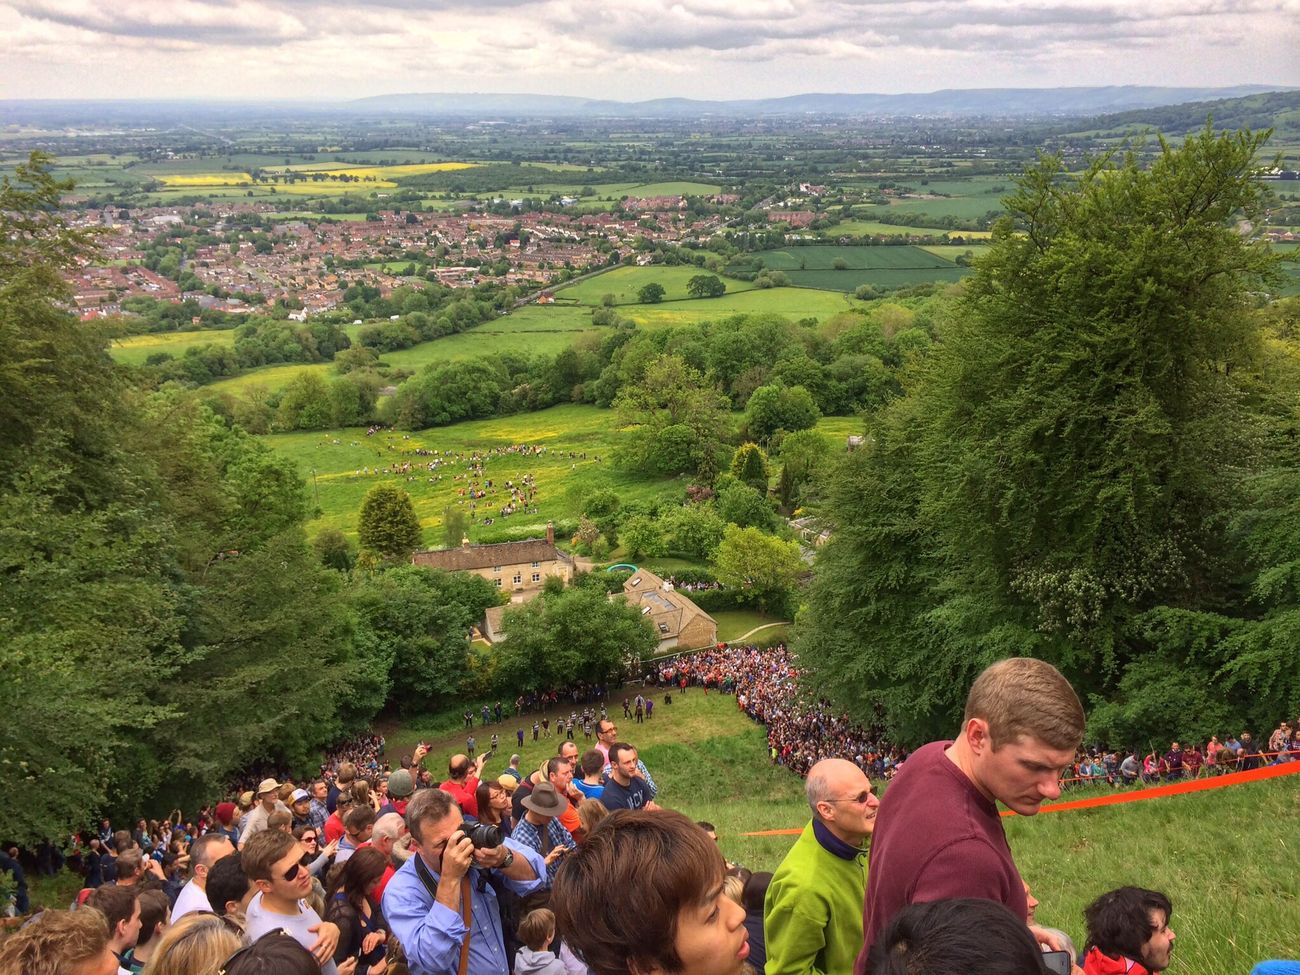 ...and one from the top. Cheese Rolling